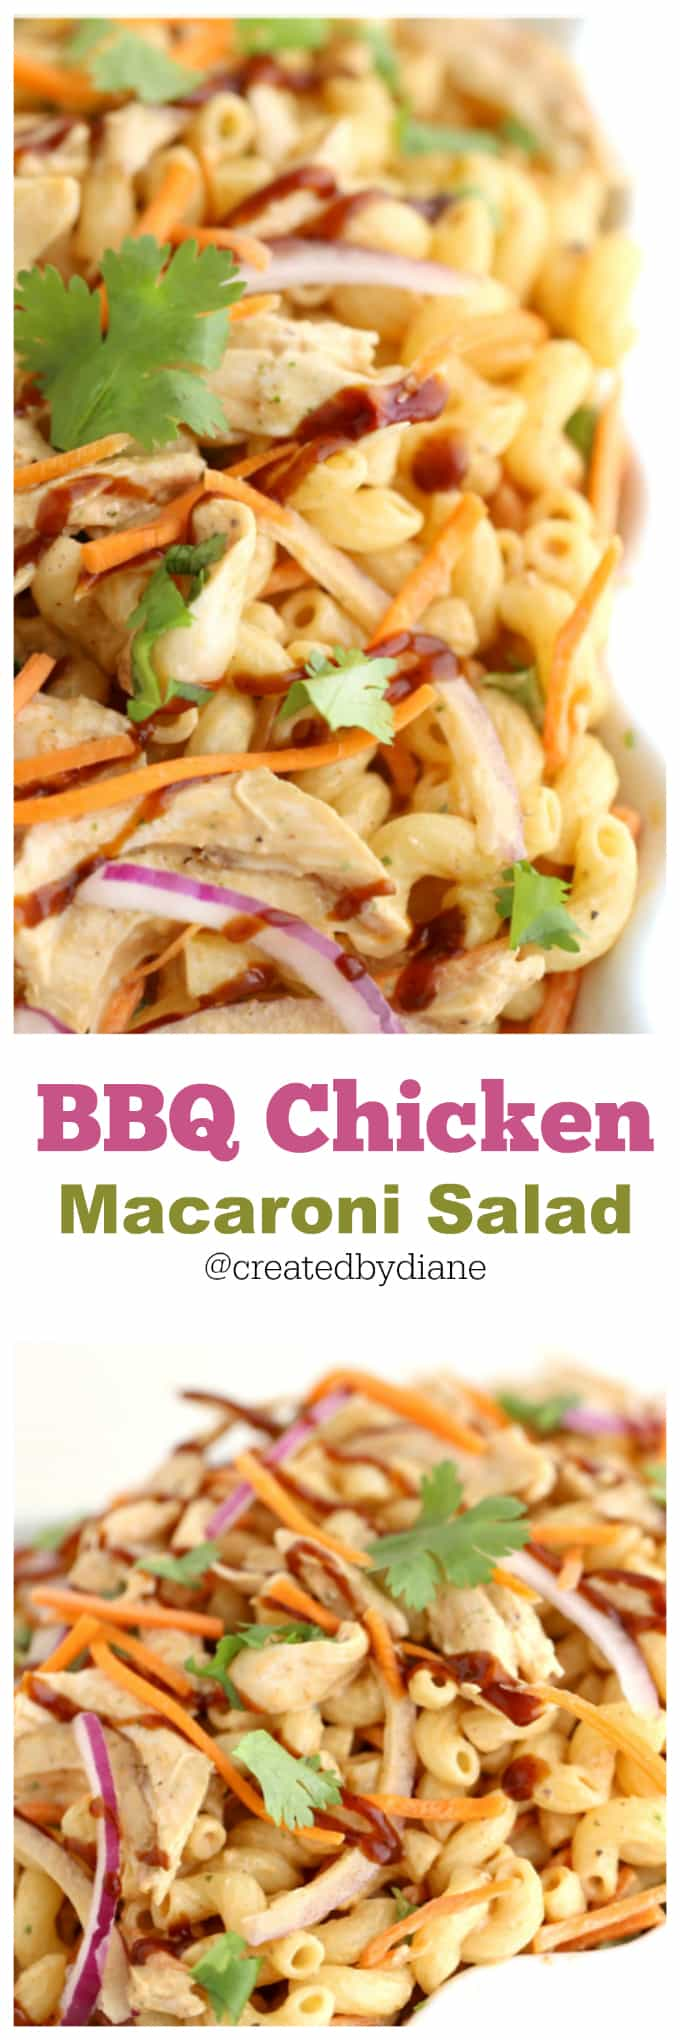 bbq chicken macaroni salad from @createdbydiane